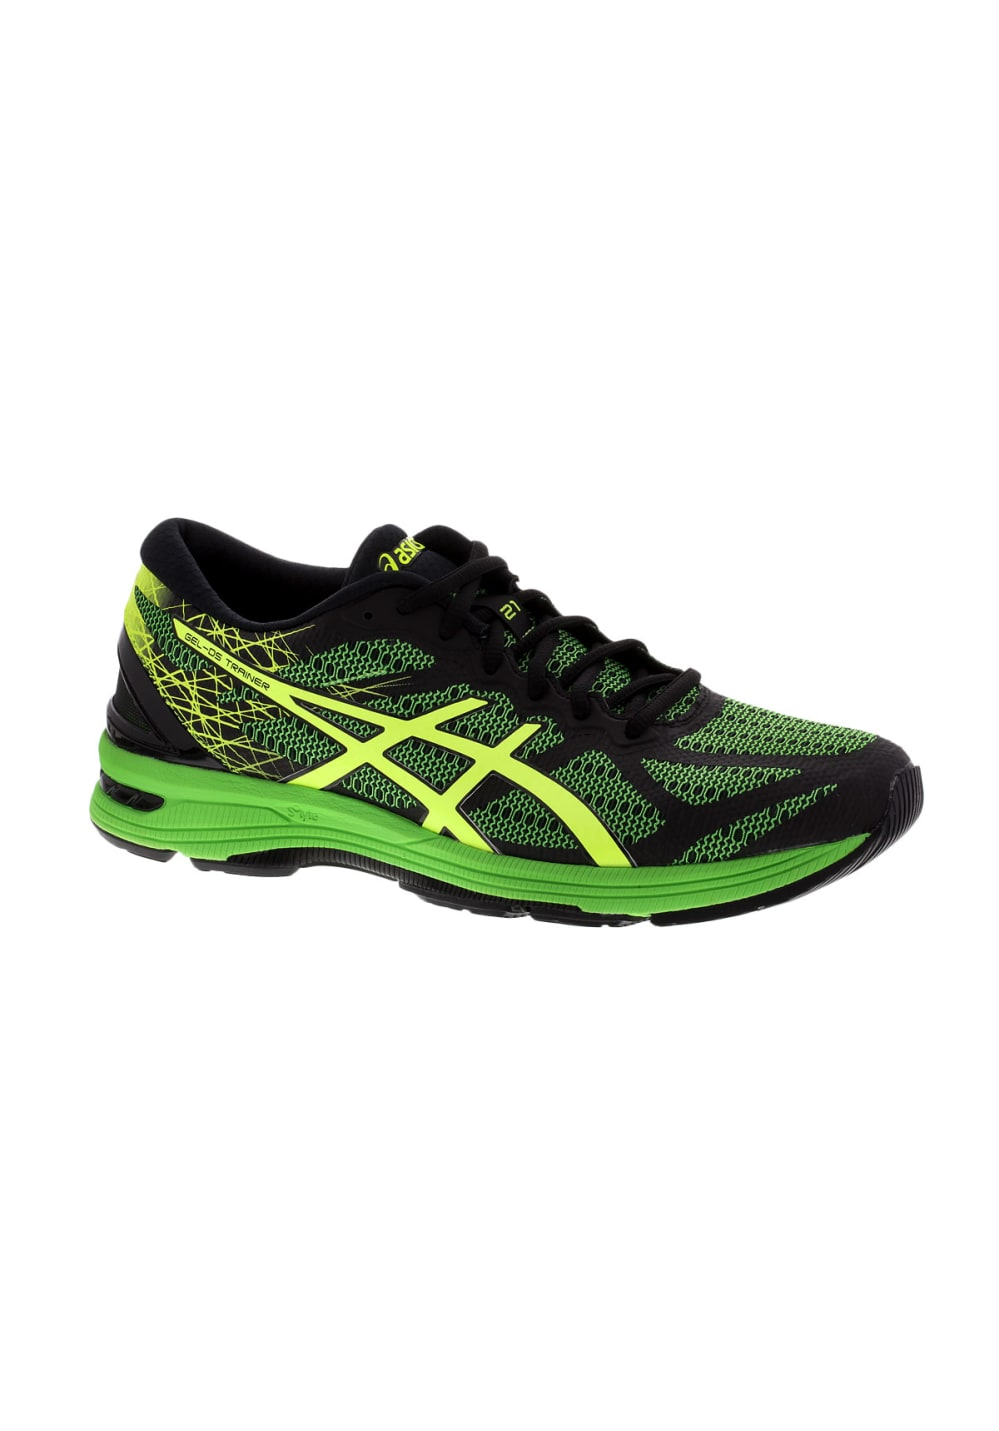 pretty nice feb74 feef3 ASICS GEL-DS Trainer 21 - Running shoes for Men - Green